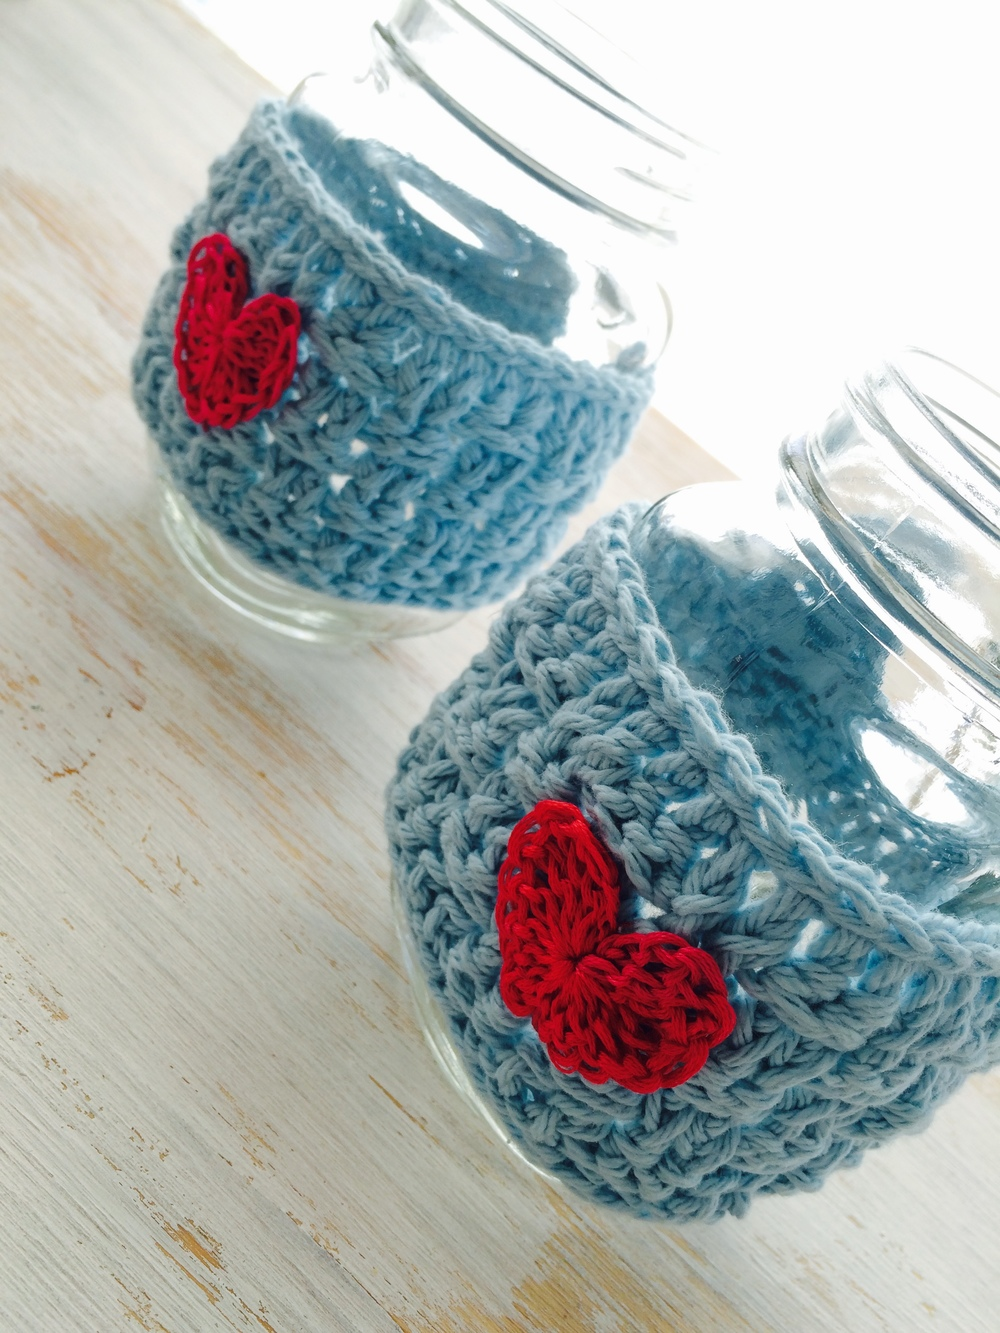 Mug cozy from 3 Fire Stones Crafts